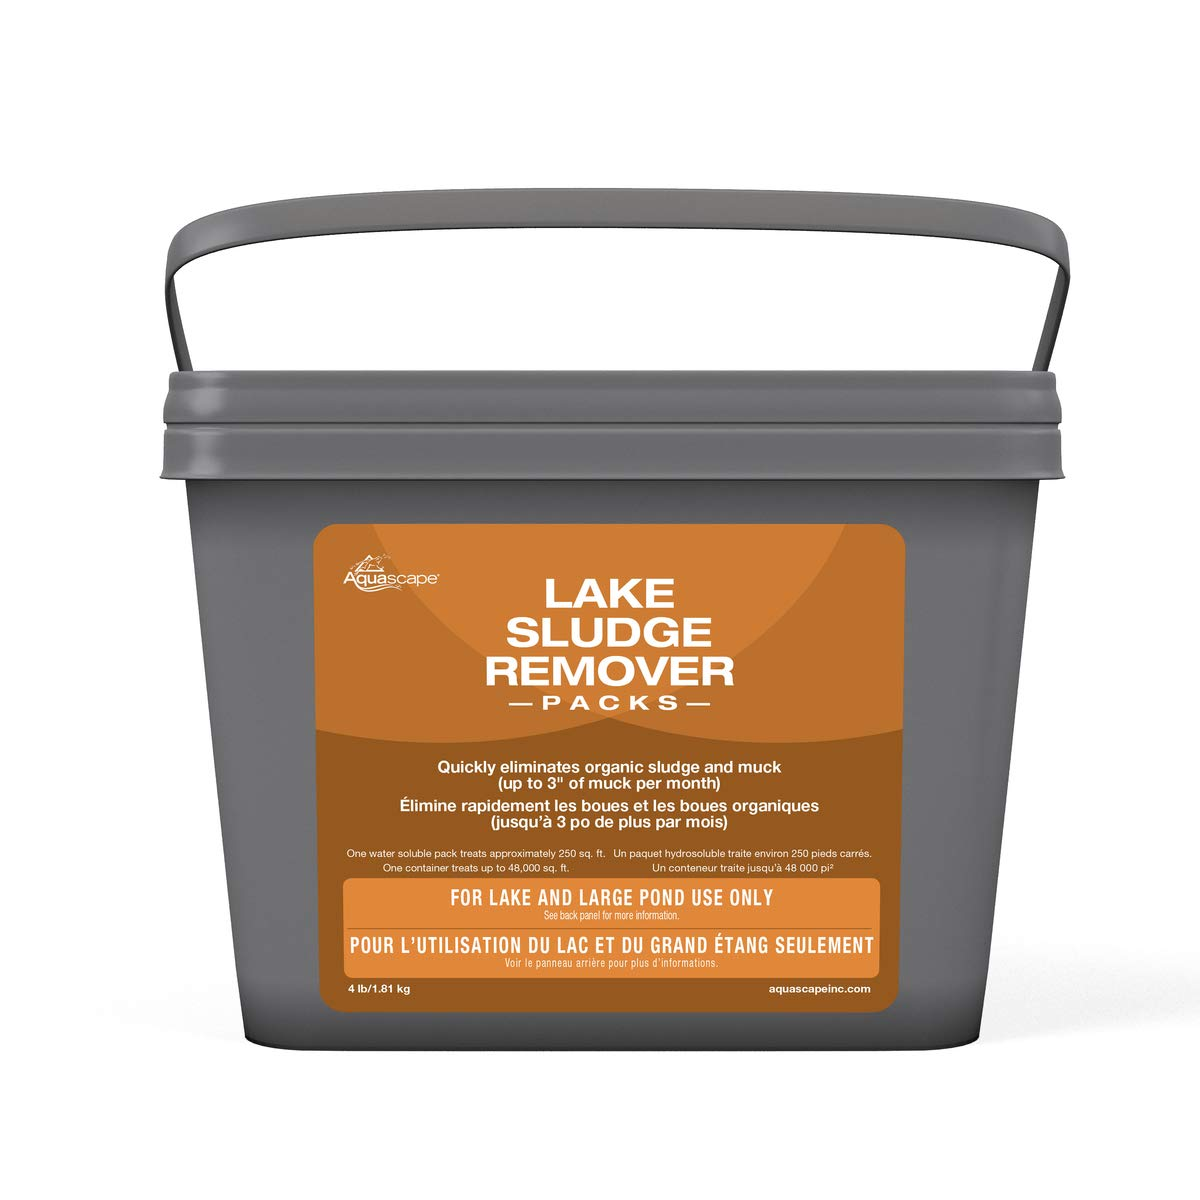 Aquascape Sludge Remover Water Treatments for Lake and Large Pond, 192 Packs | 40017 by Aquascape